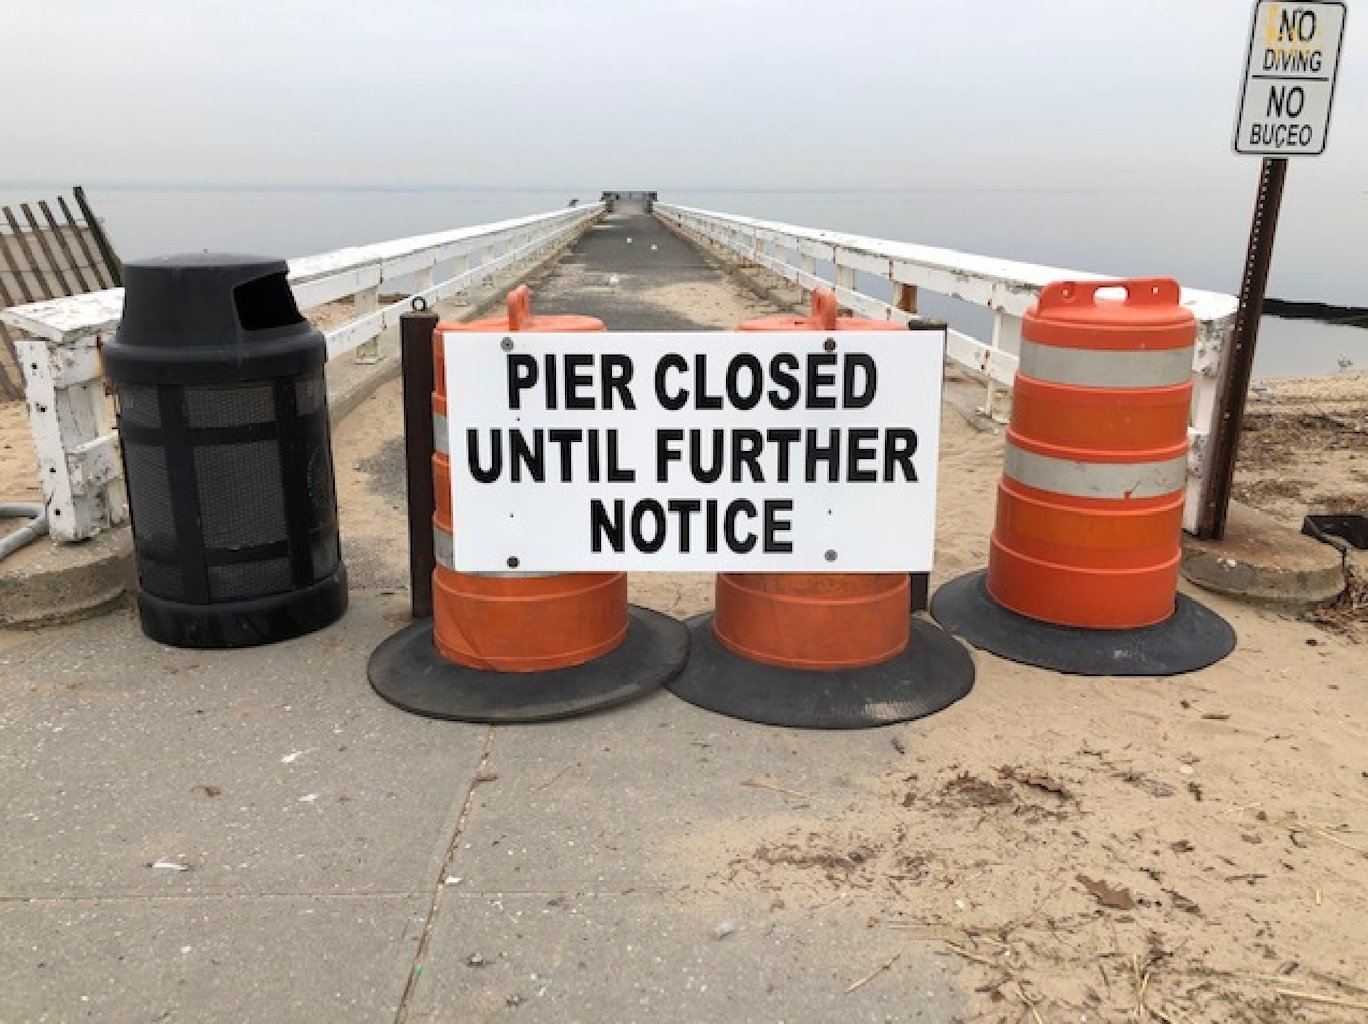 The Pryibil Beach pier will remain closed for repairs until further notice.